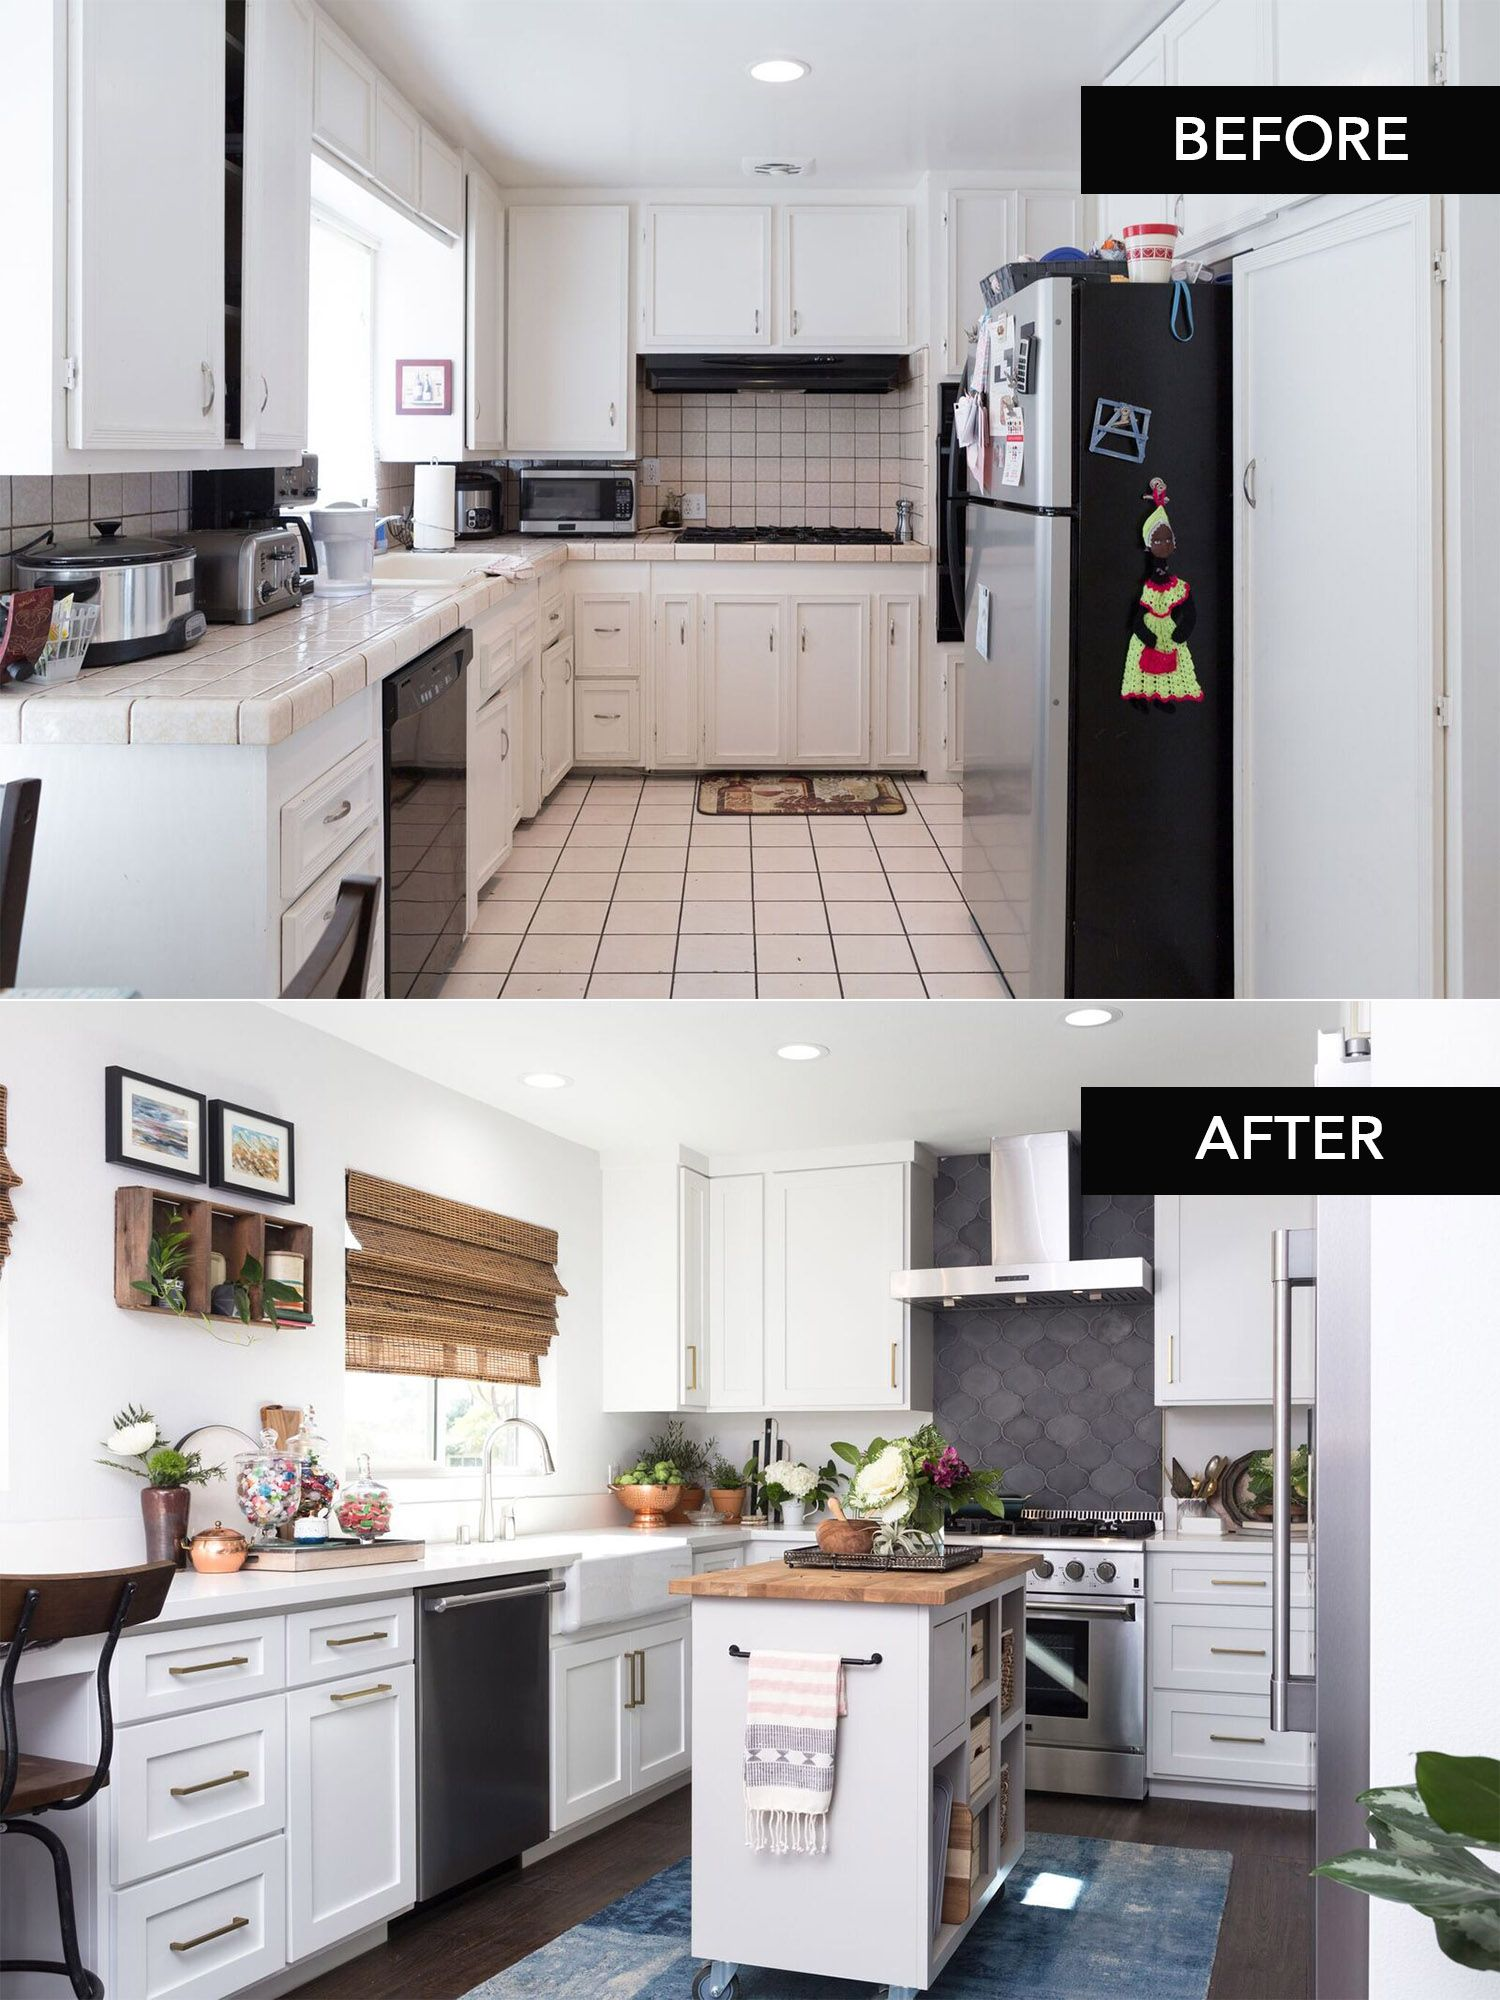 Stunning Before After Kitchen Transformation As Seen On Hgtv S